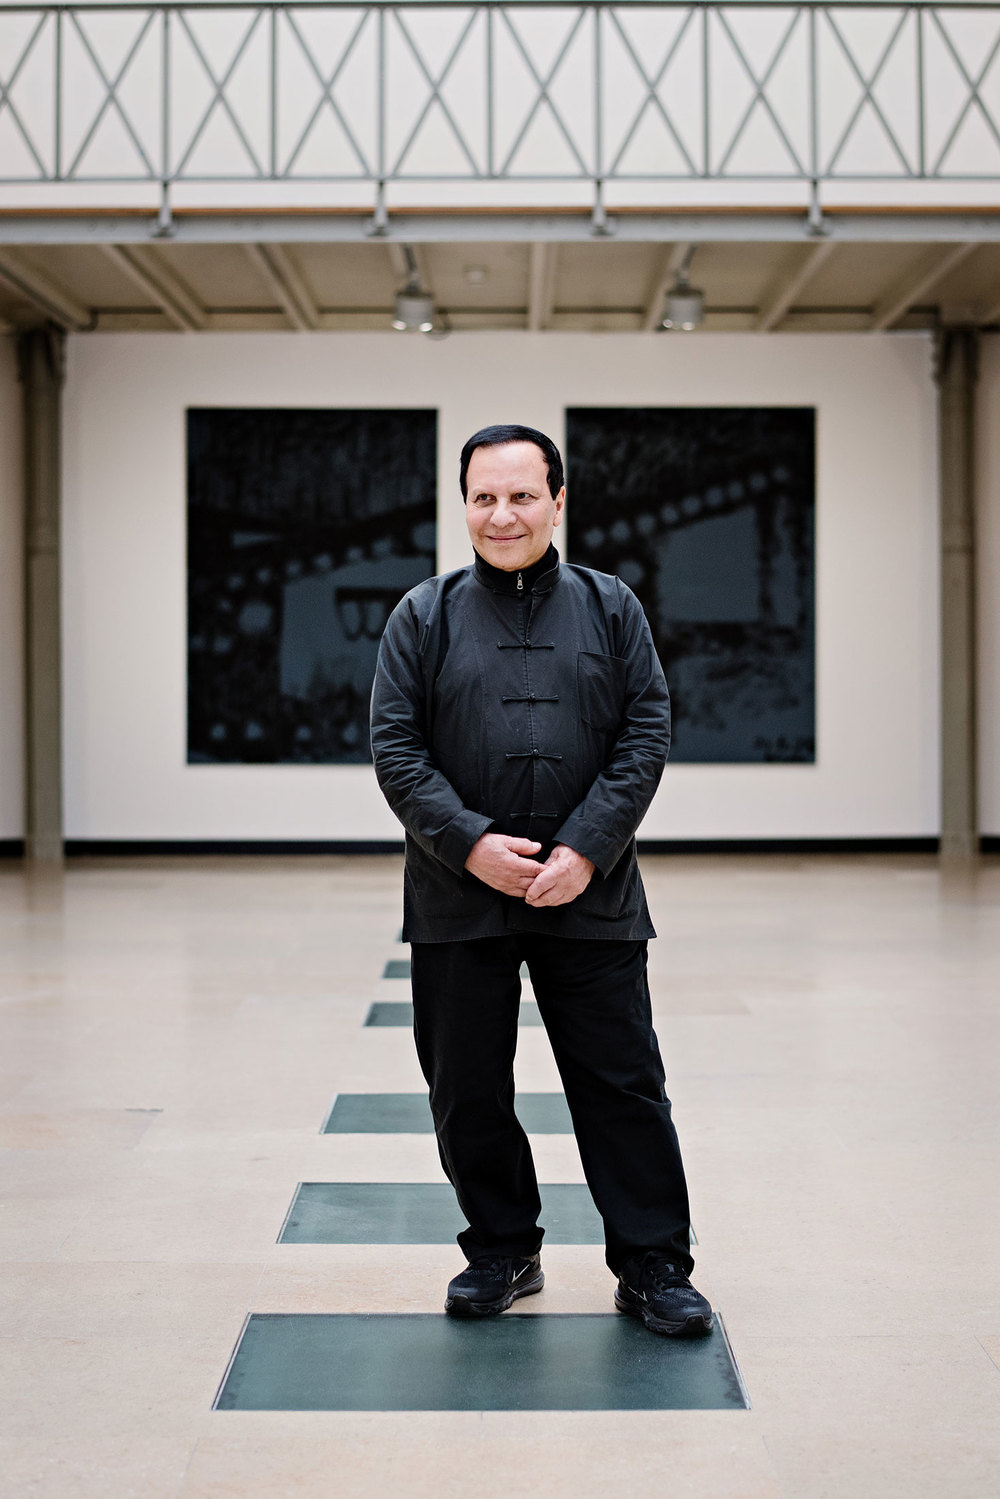 Azzedine Alaïa inside his eponymous gallery. (Photo: Franck Juery/Surface)